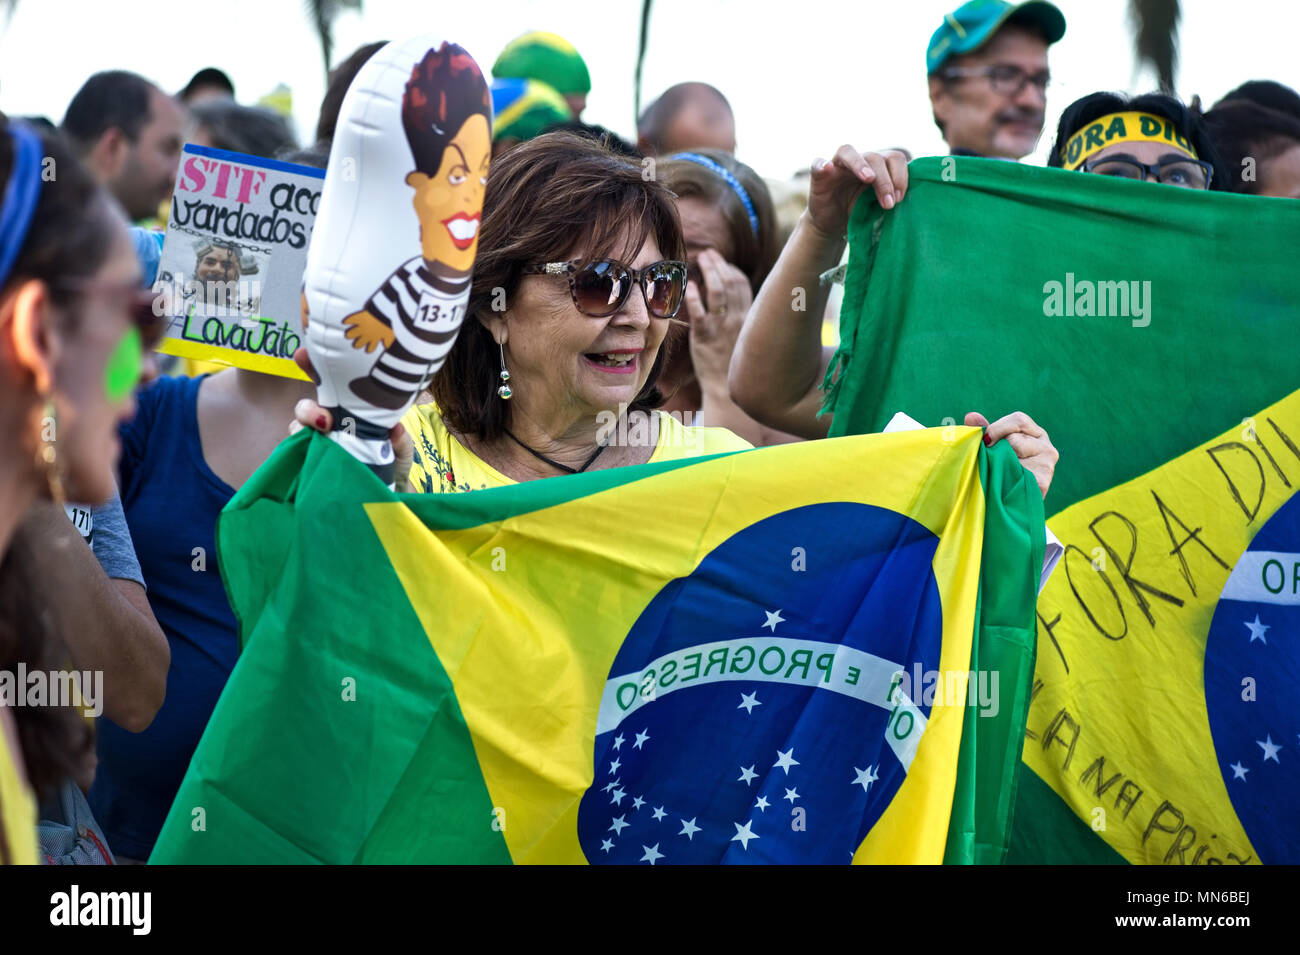 Rio de Janeiro - April 17, 2016: Demonstrators take part in a protest demanding the resignation of Brazilian President Dilma Rousseff - Stock Image